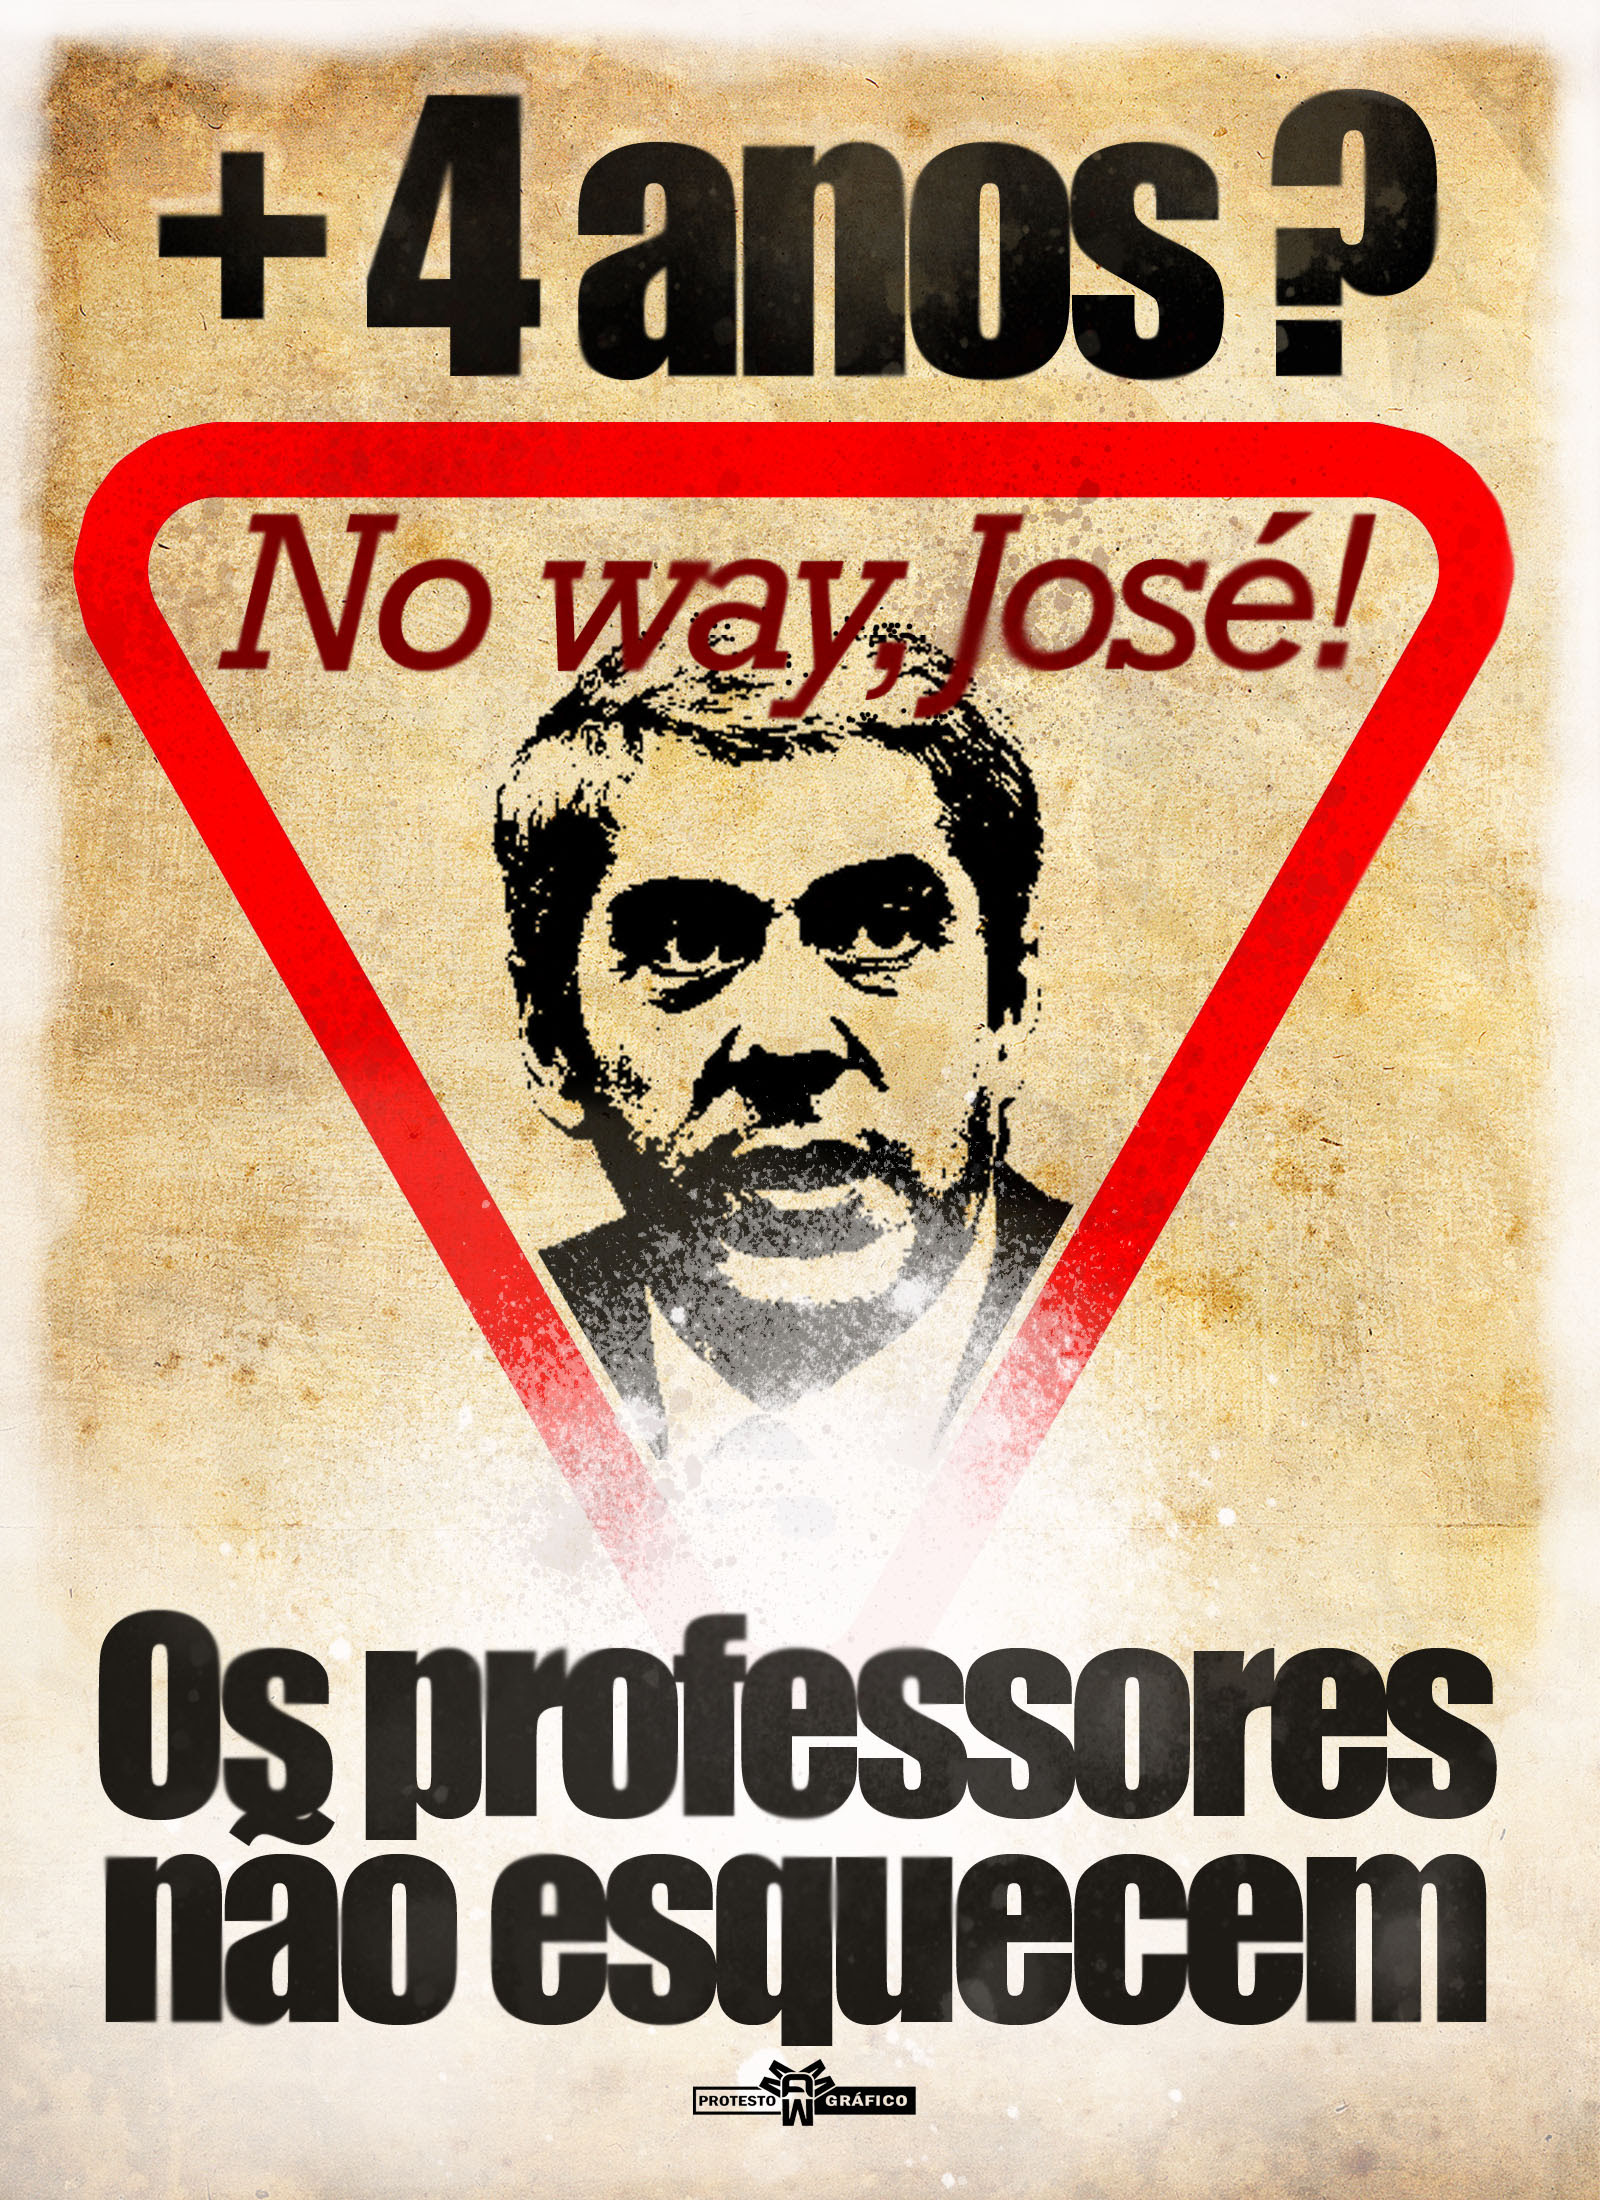 http://protestografico.files.wordpress.com/2009/09/nowayjose.jpg